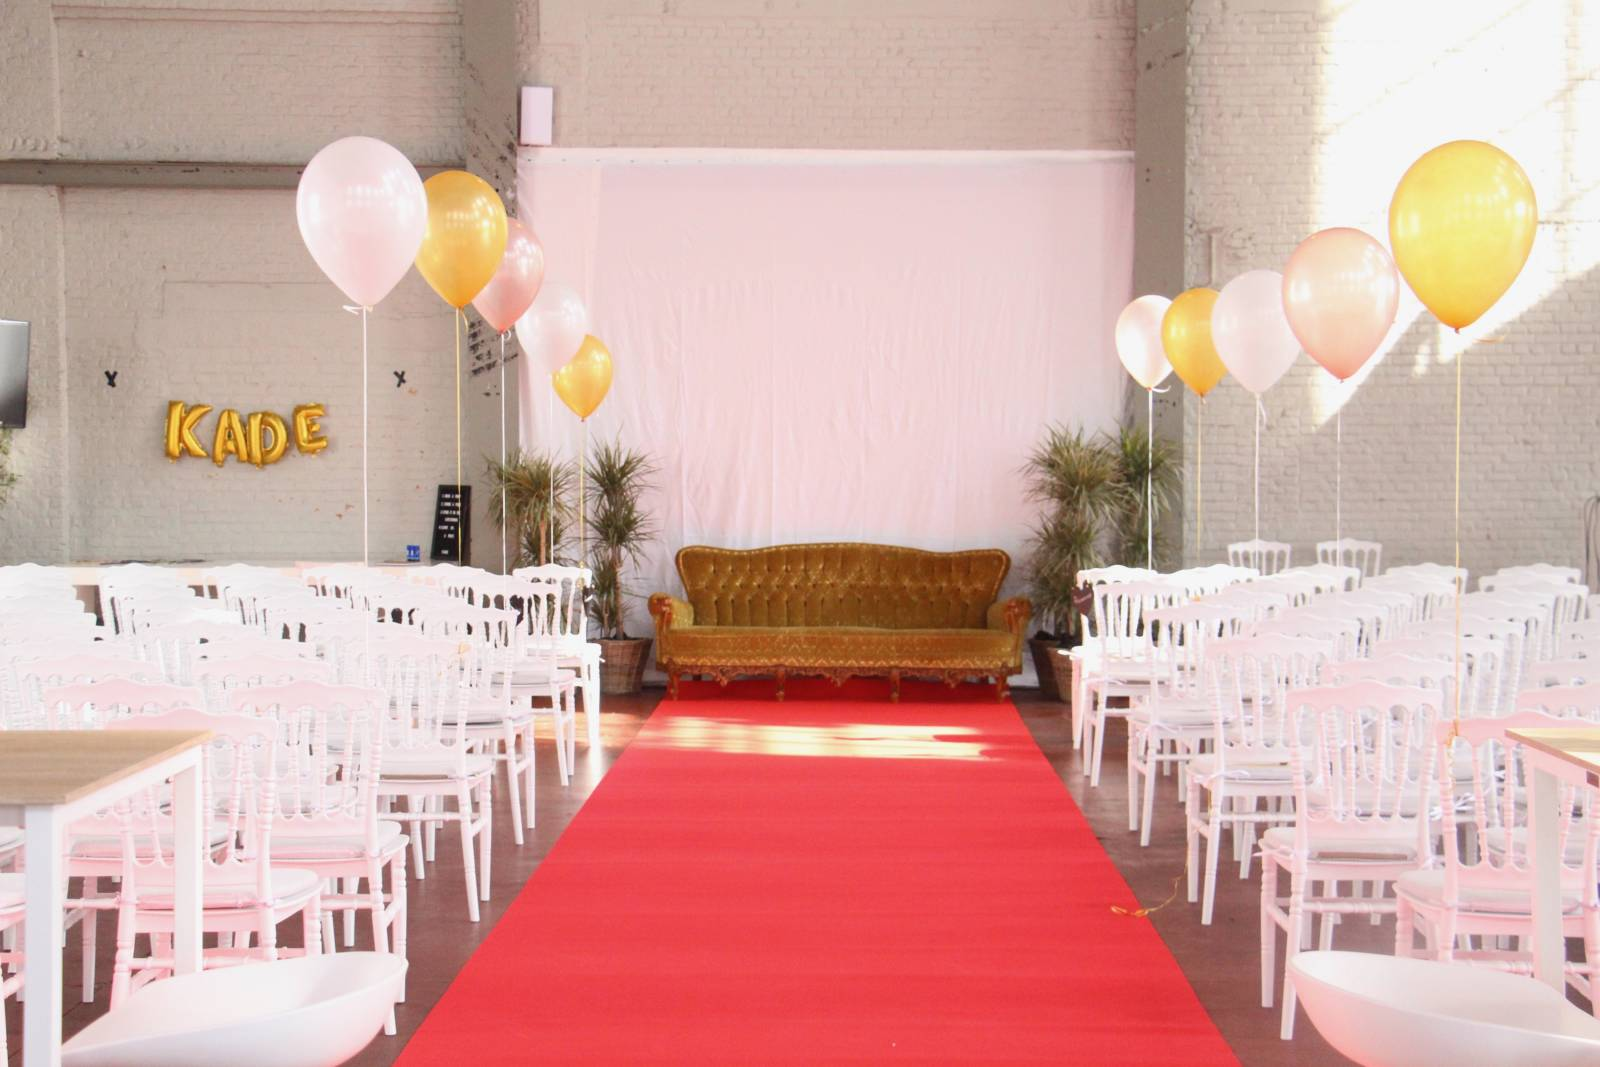 Hangar 43 - Feestzaal Oost-Vlaanderen - Industrieel - House of Weddings - 41